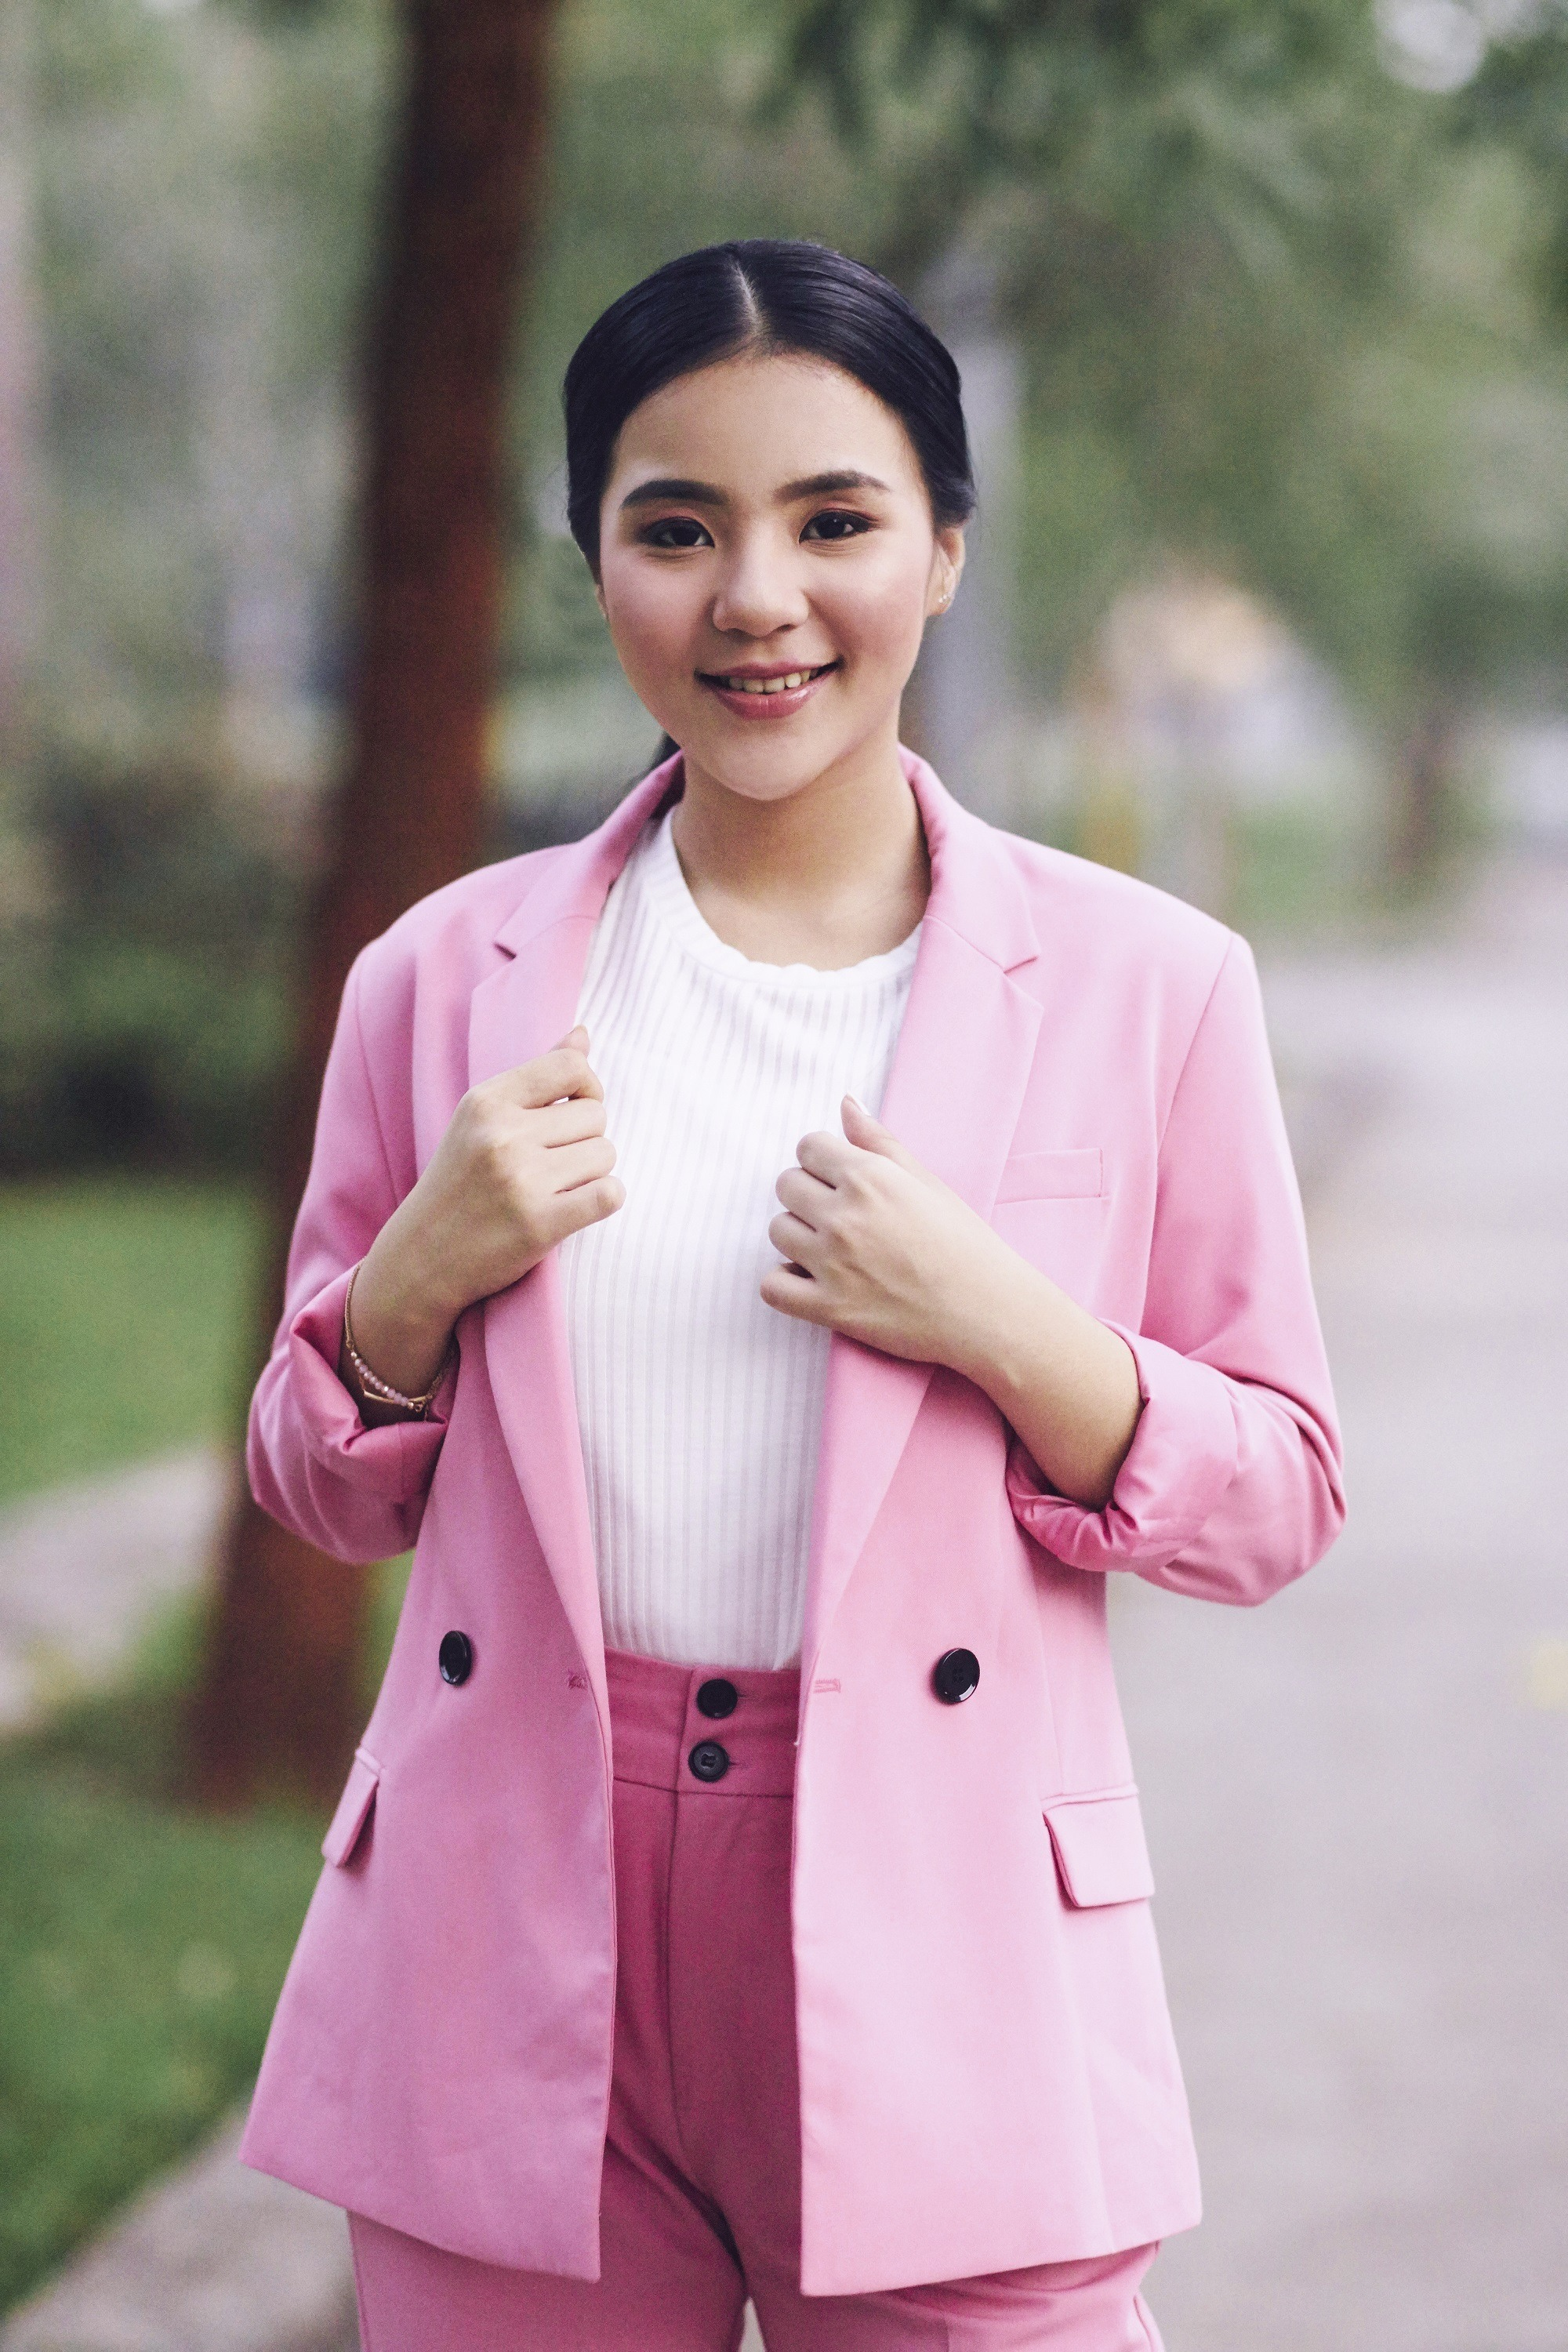 Tucked in ponytail. Asian woman wearing white blouse and pink blazer and pants with long black hair in tucked in ponytail standing ioutdoors